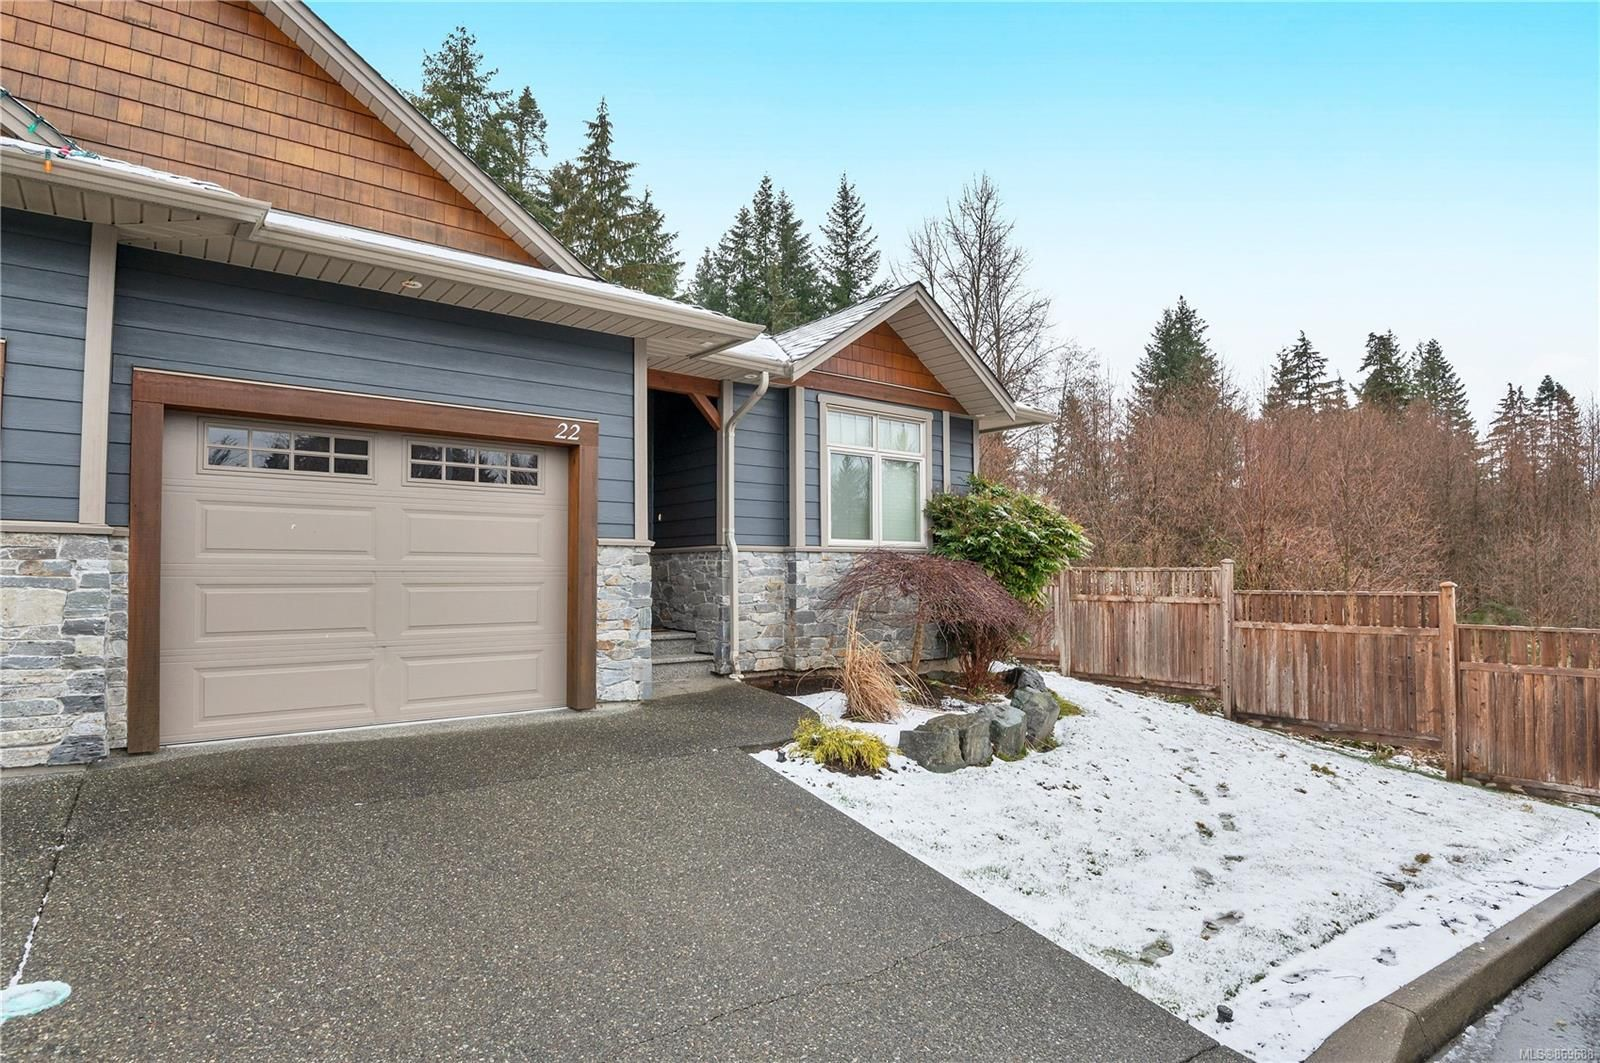 Main Photo: 22 48 S McPhedran Rd in : CR Campbell River South Condo for sale (Campbell River)  : MLS®# 869688